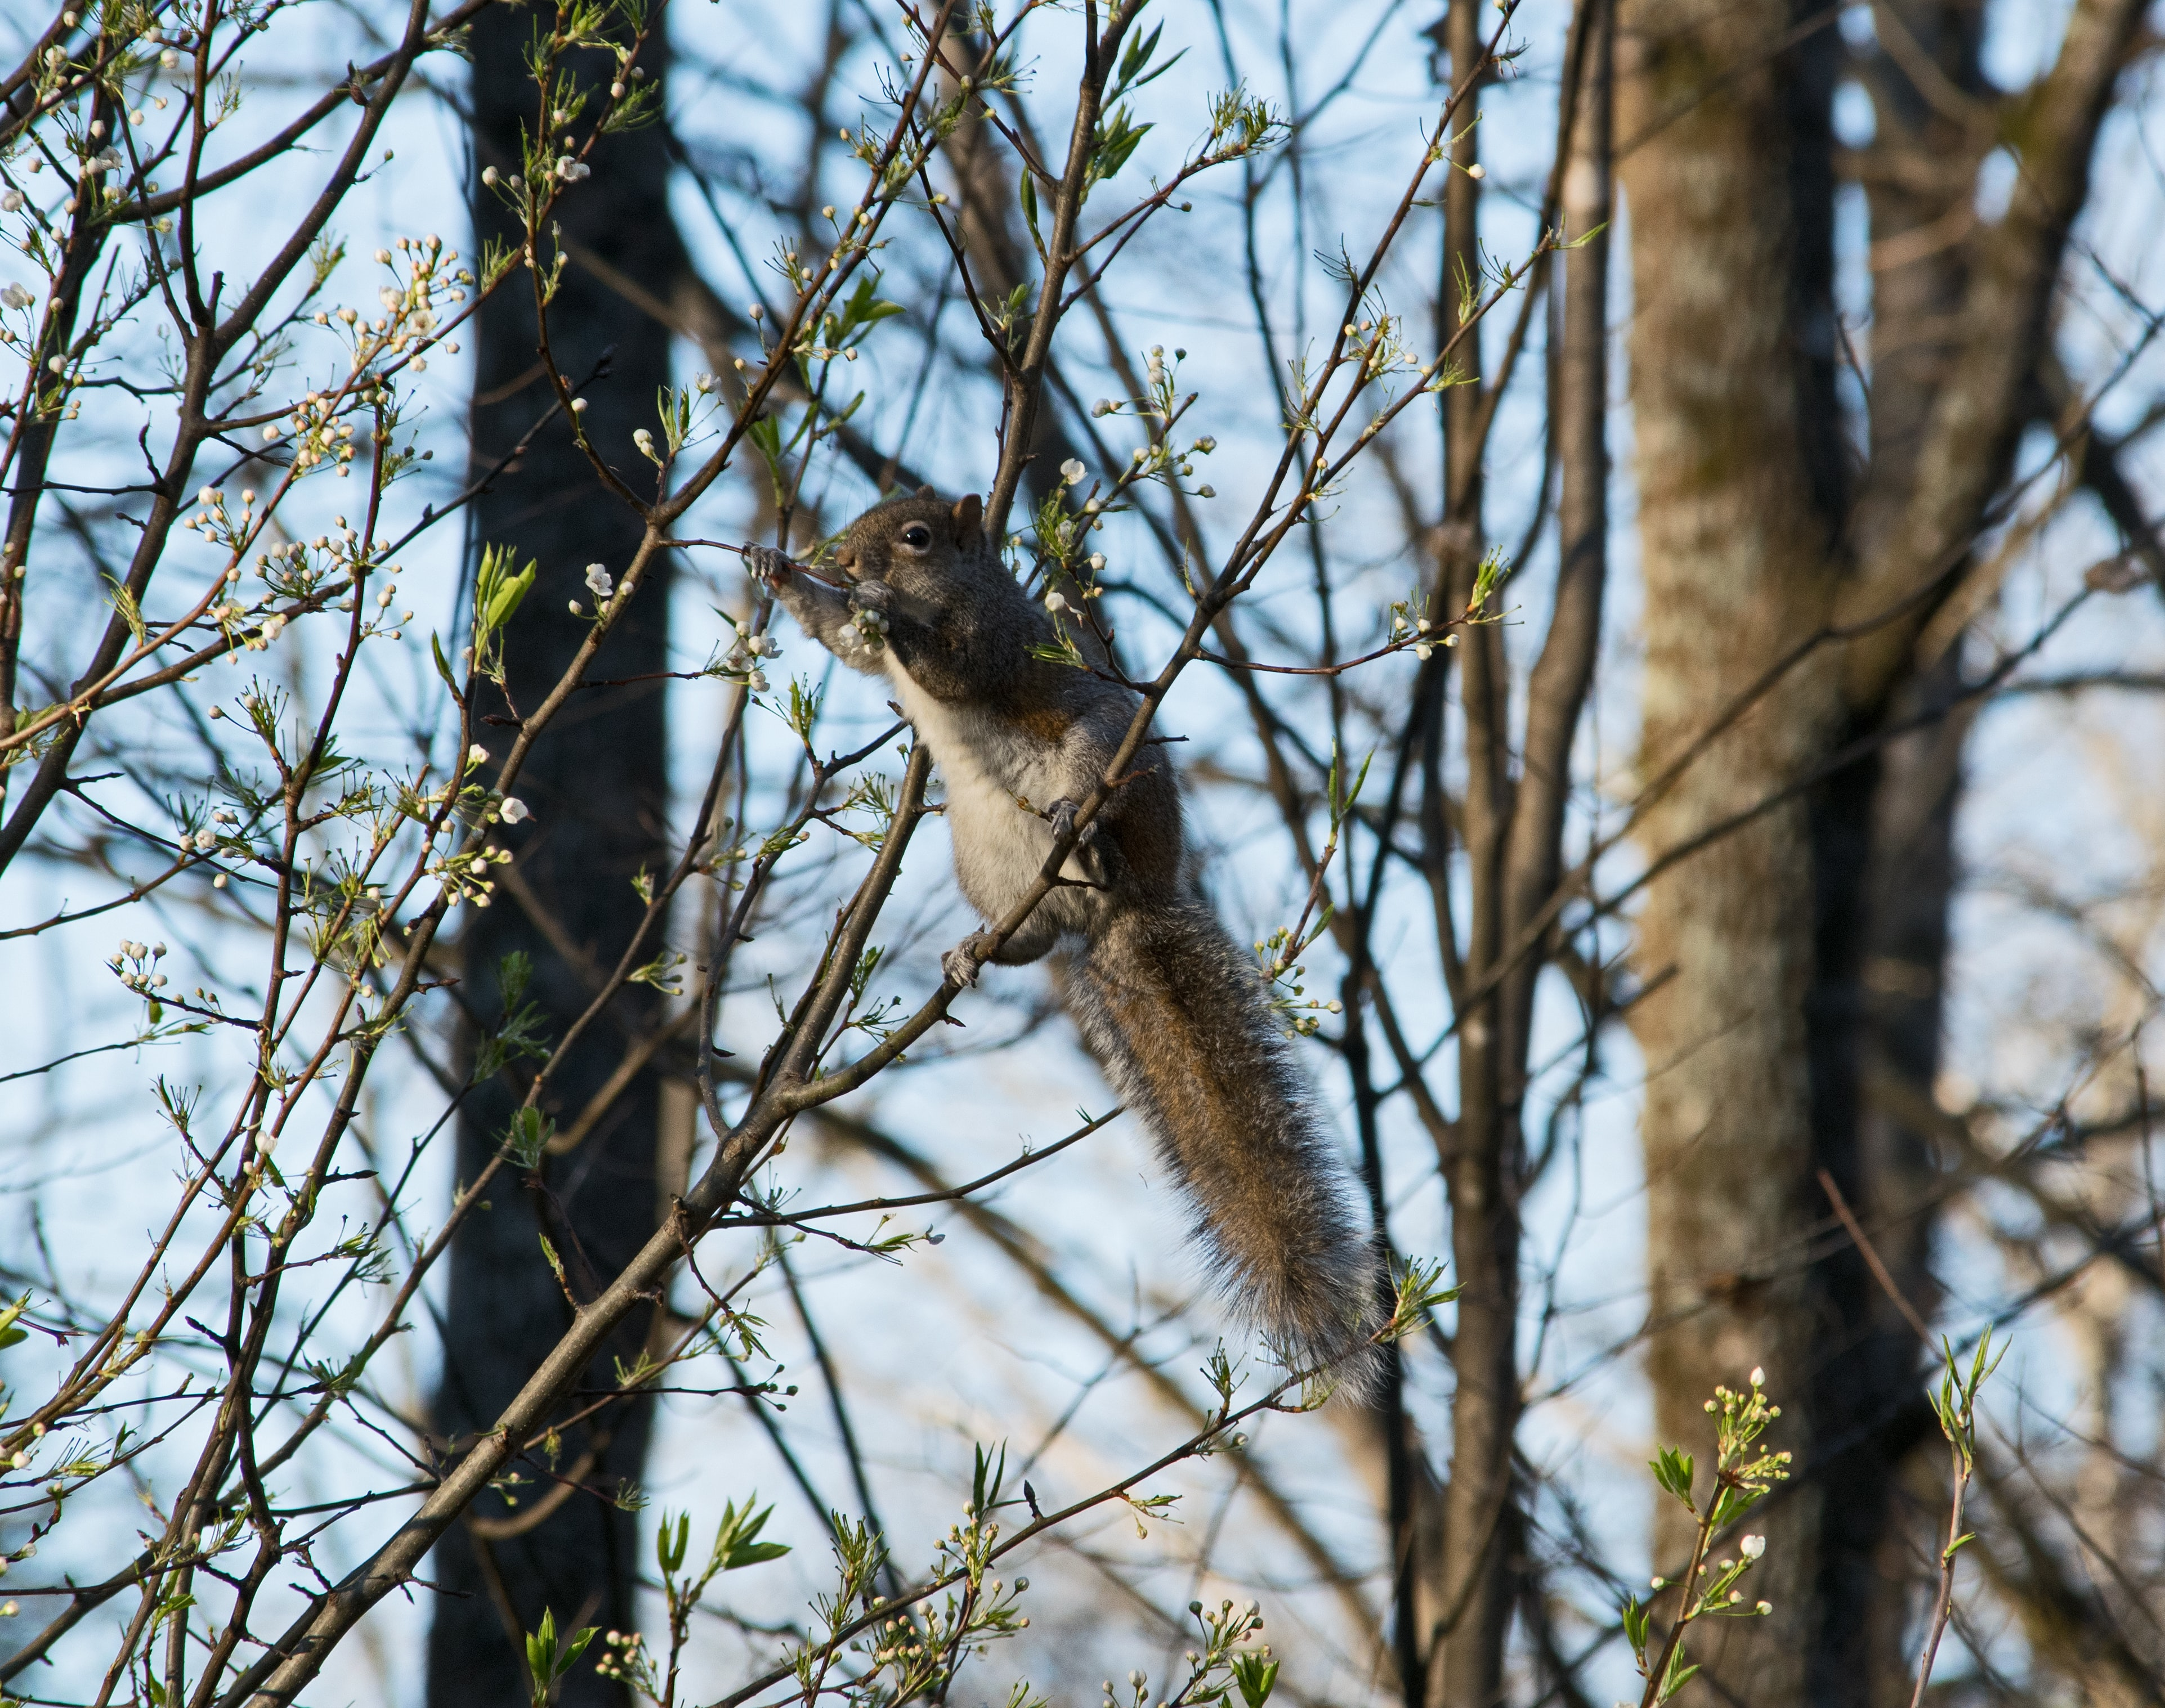 squirrel on tree branch at daytime